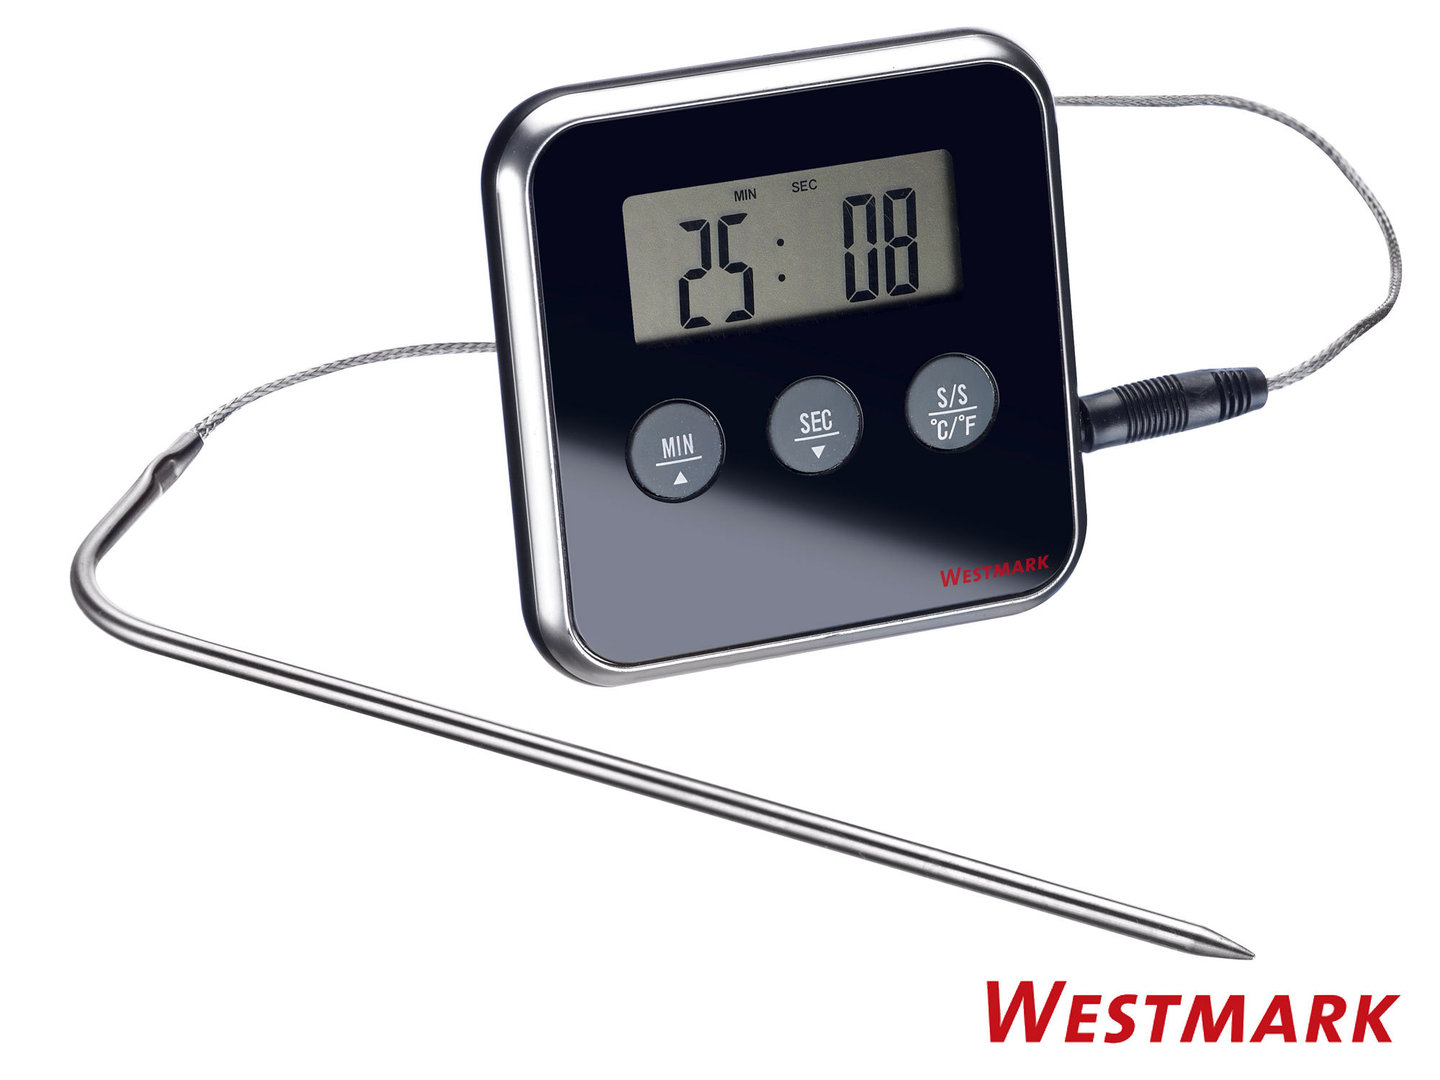 WESTMARK digital food thermometer with probe